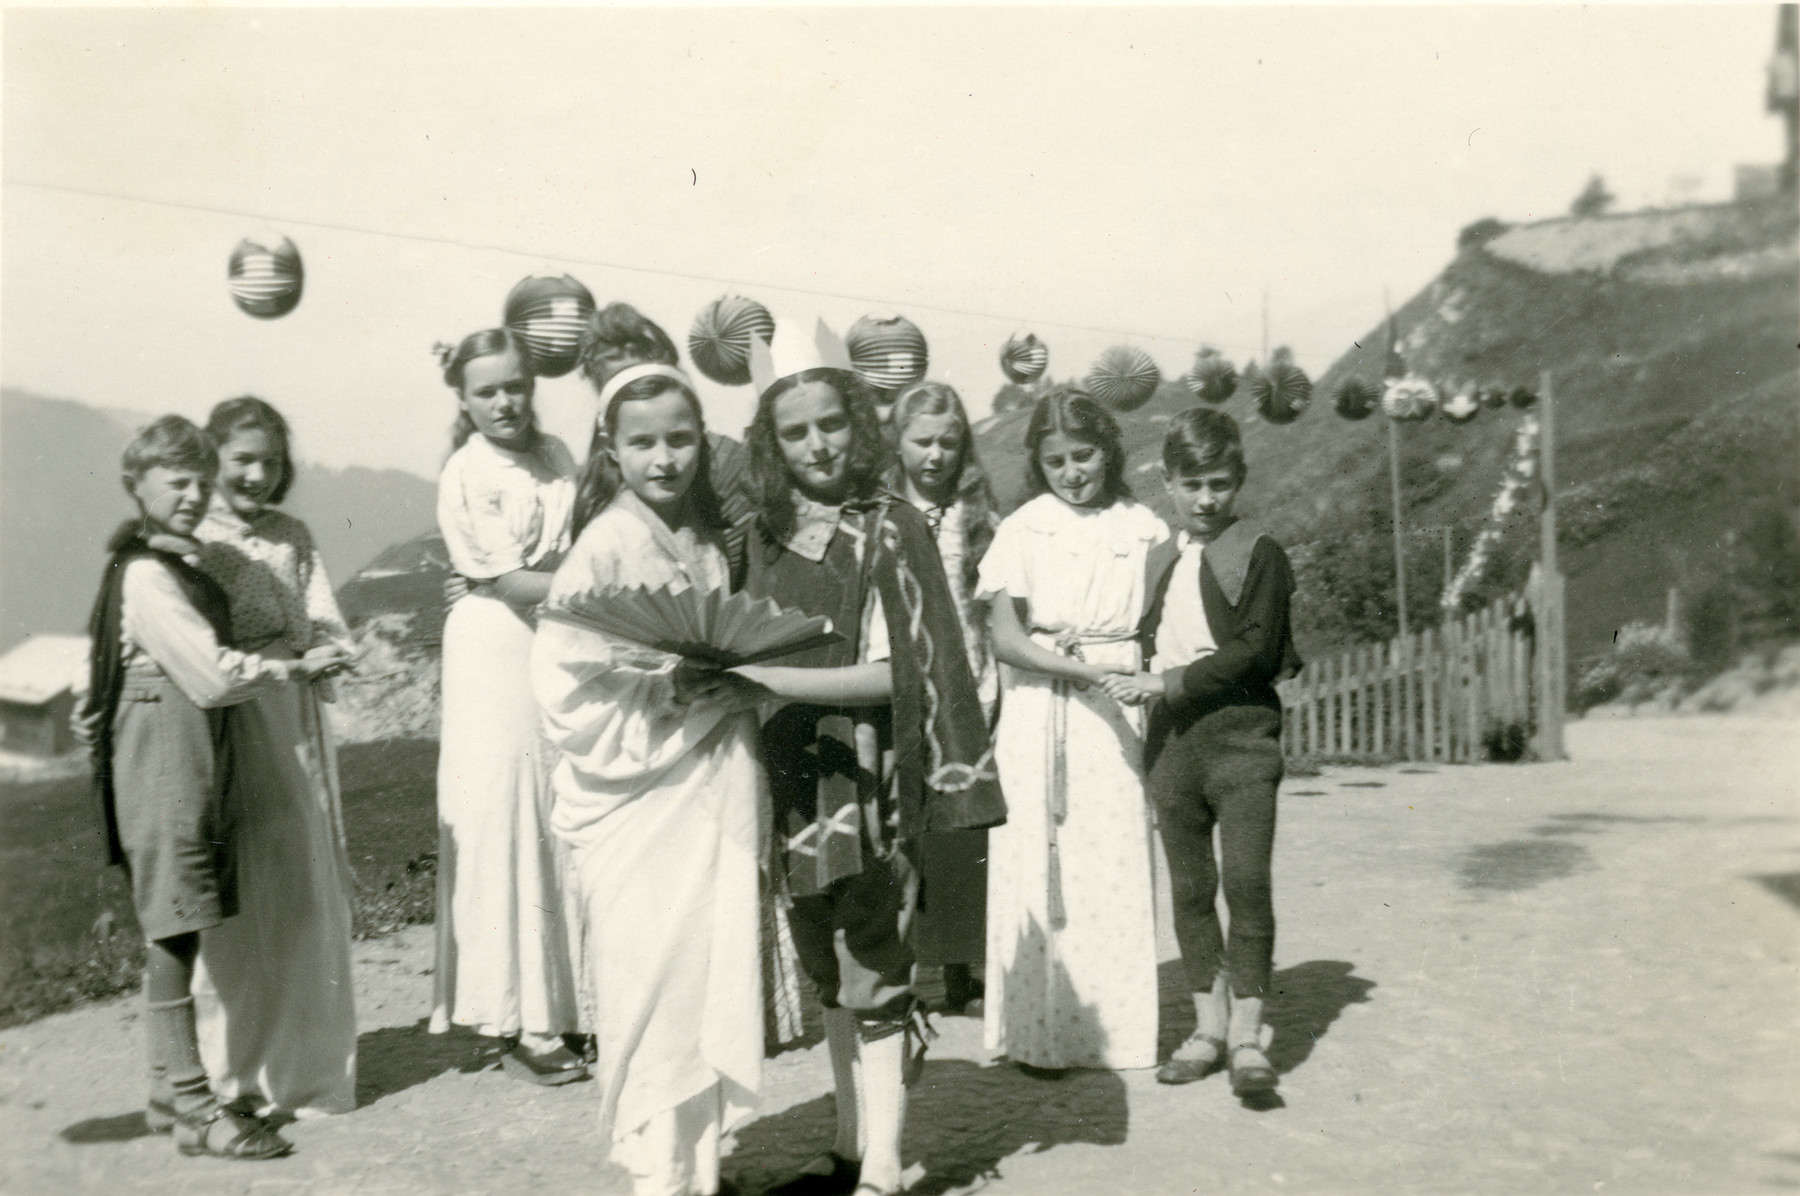 Jewish children perform in a summer camp in Feldis Switzerland.  Mirjam Ermann is pictured in the front, left.